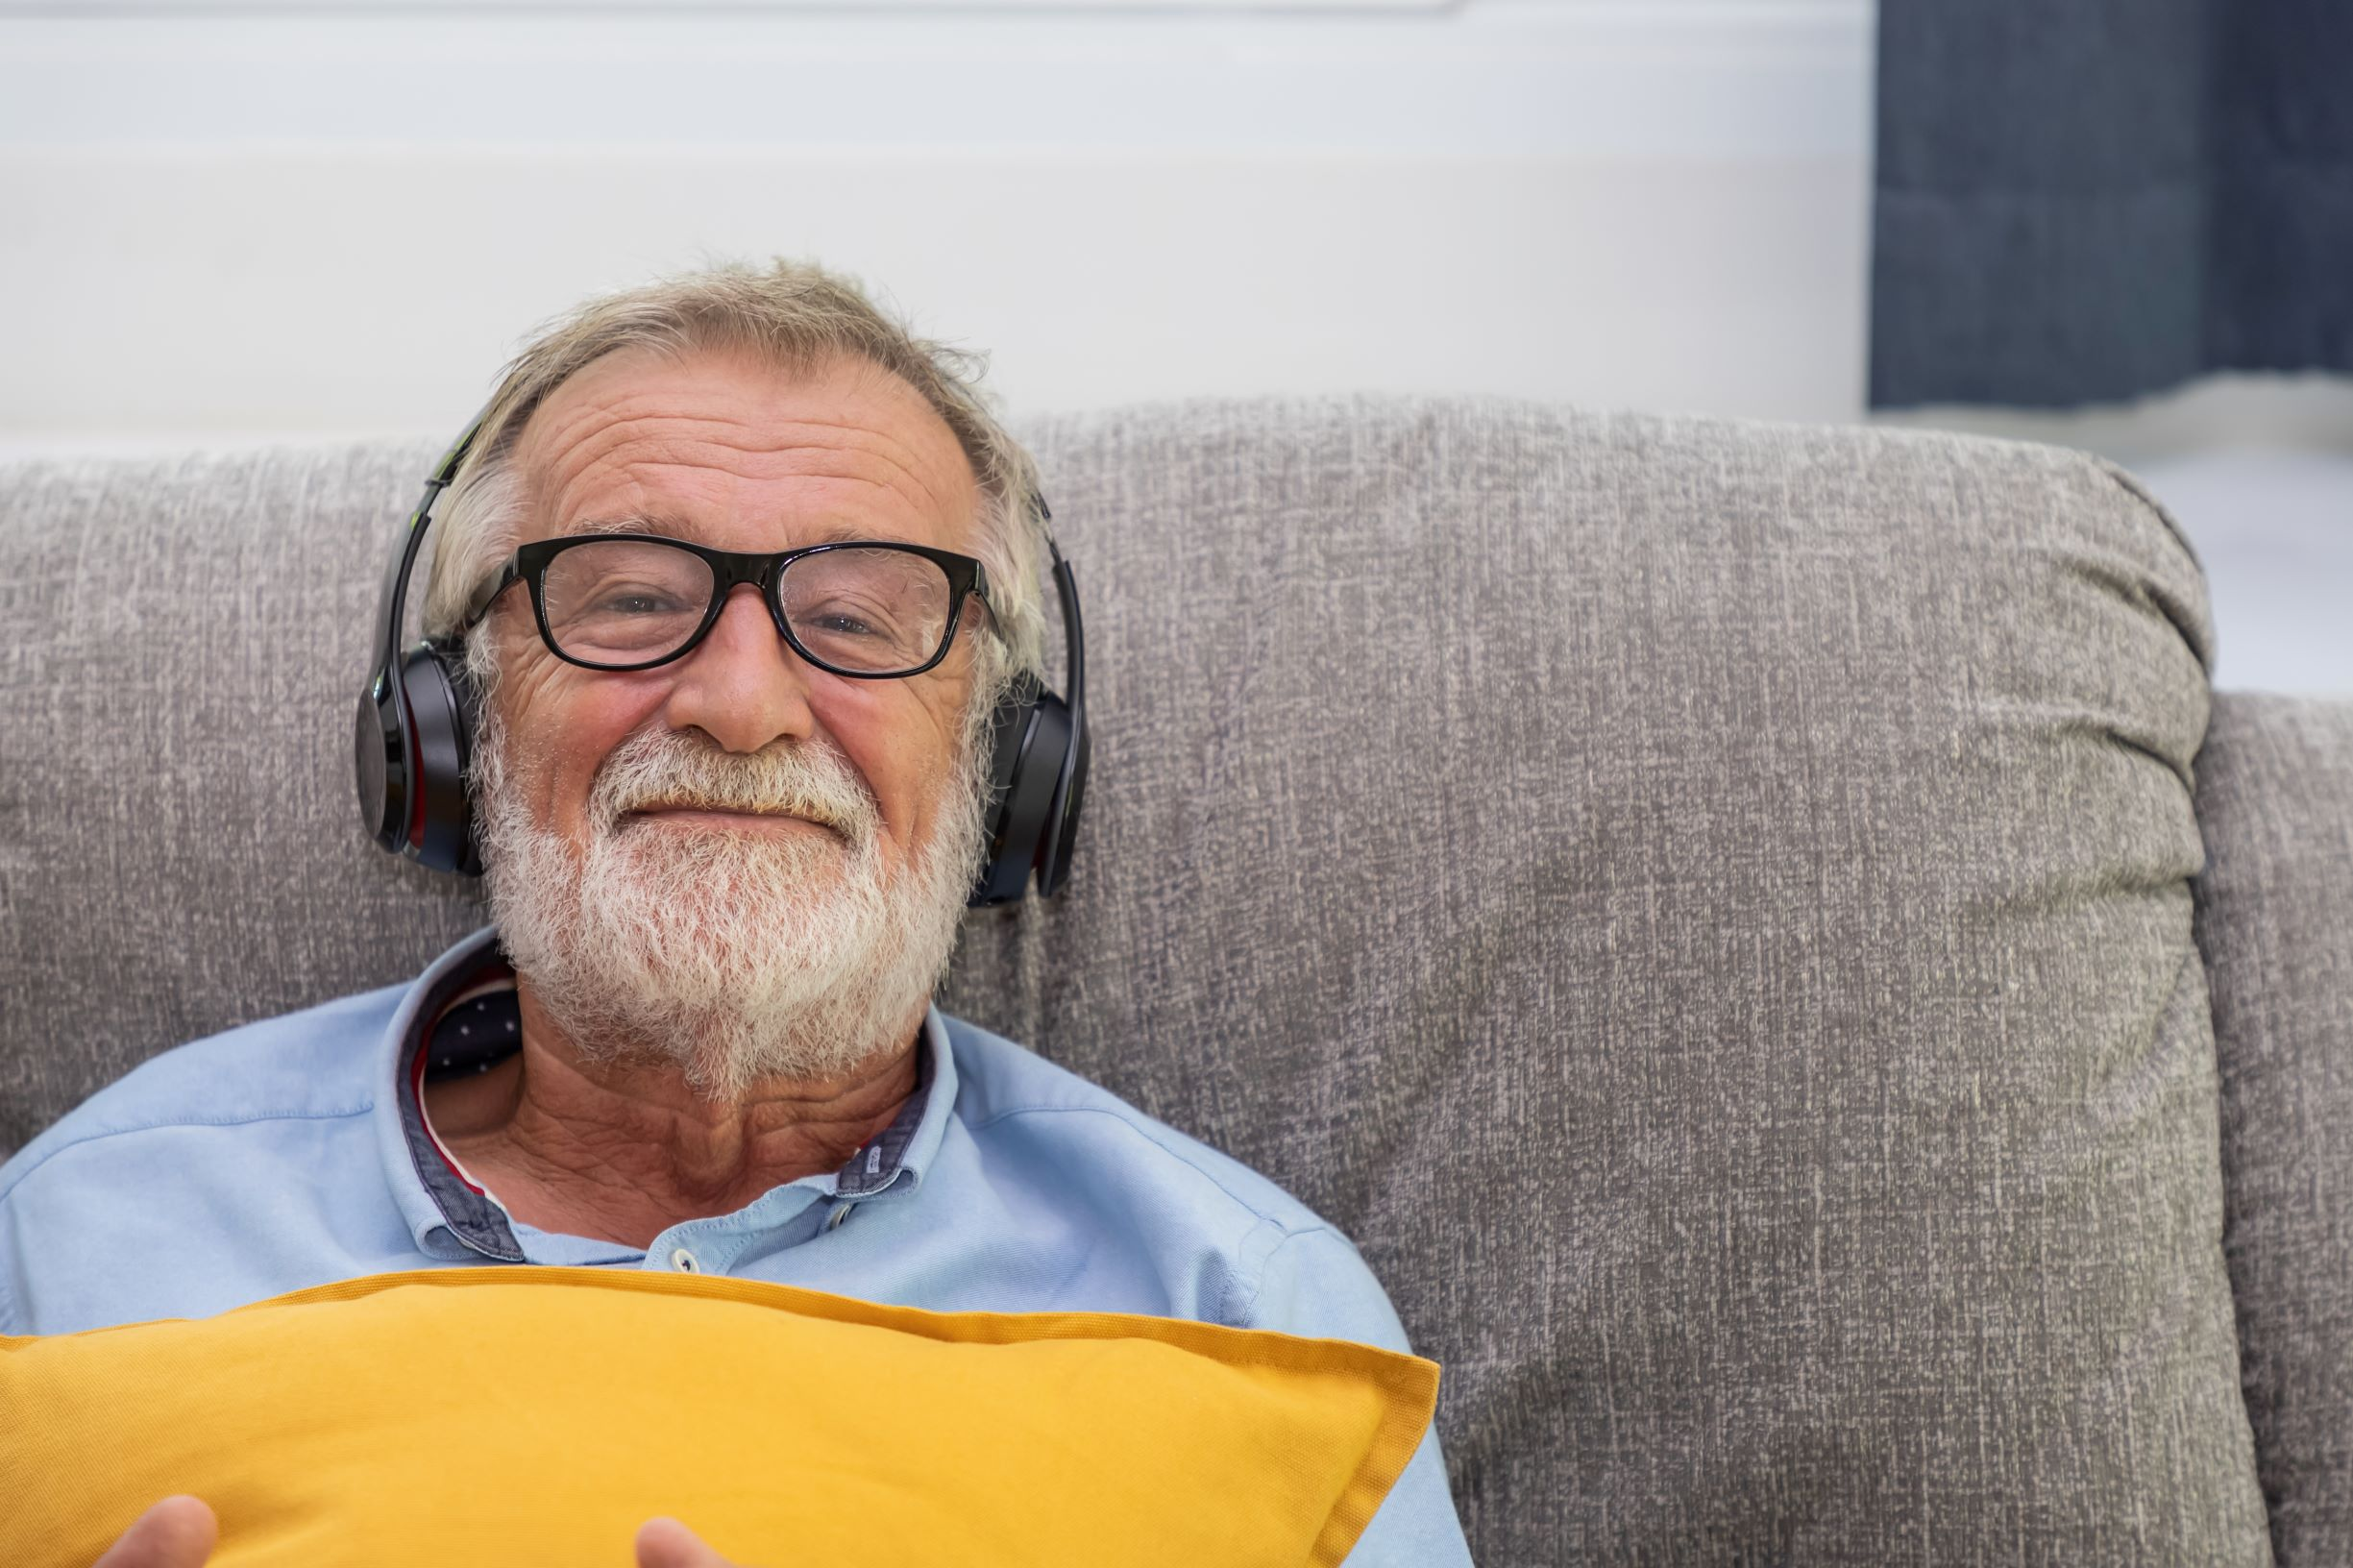 A man sitting on a sofa with headphones on. He is holding a bright yellow cushion.